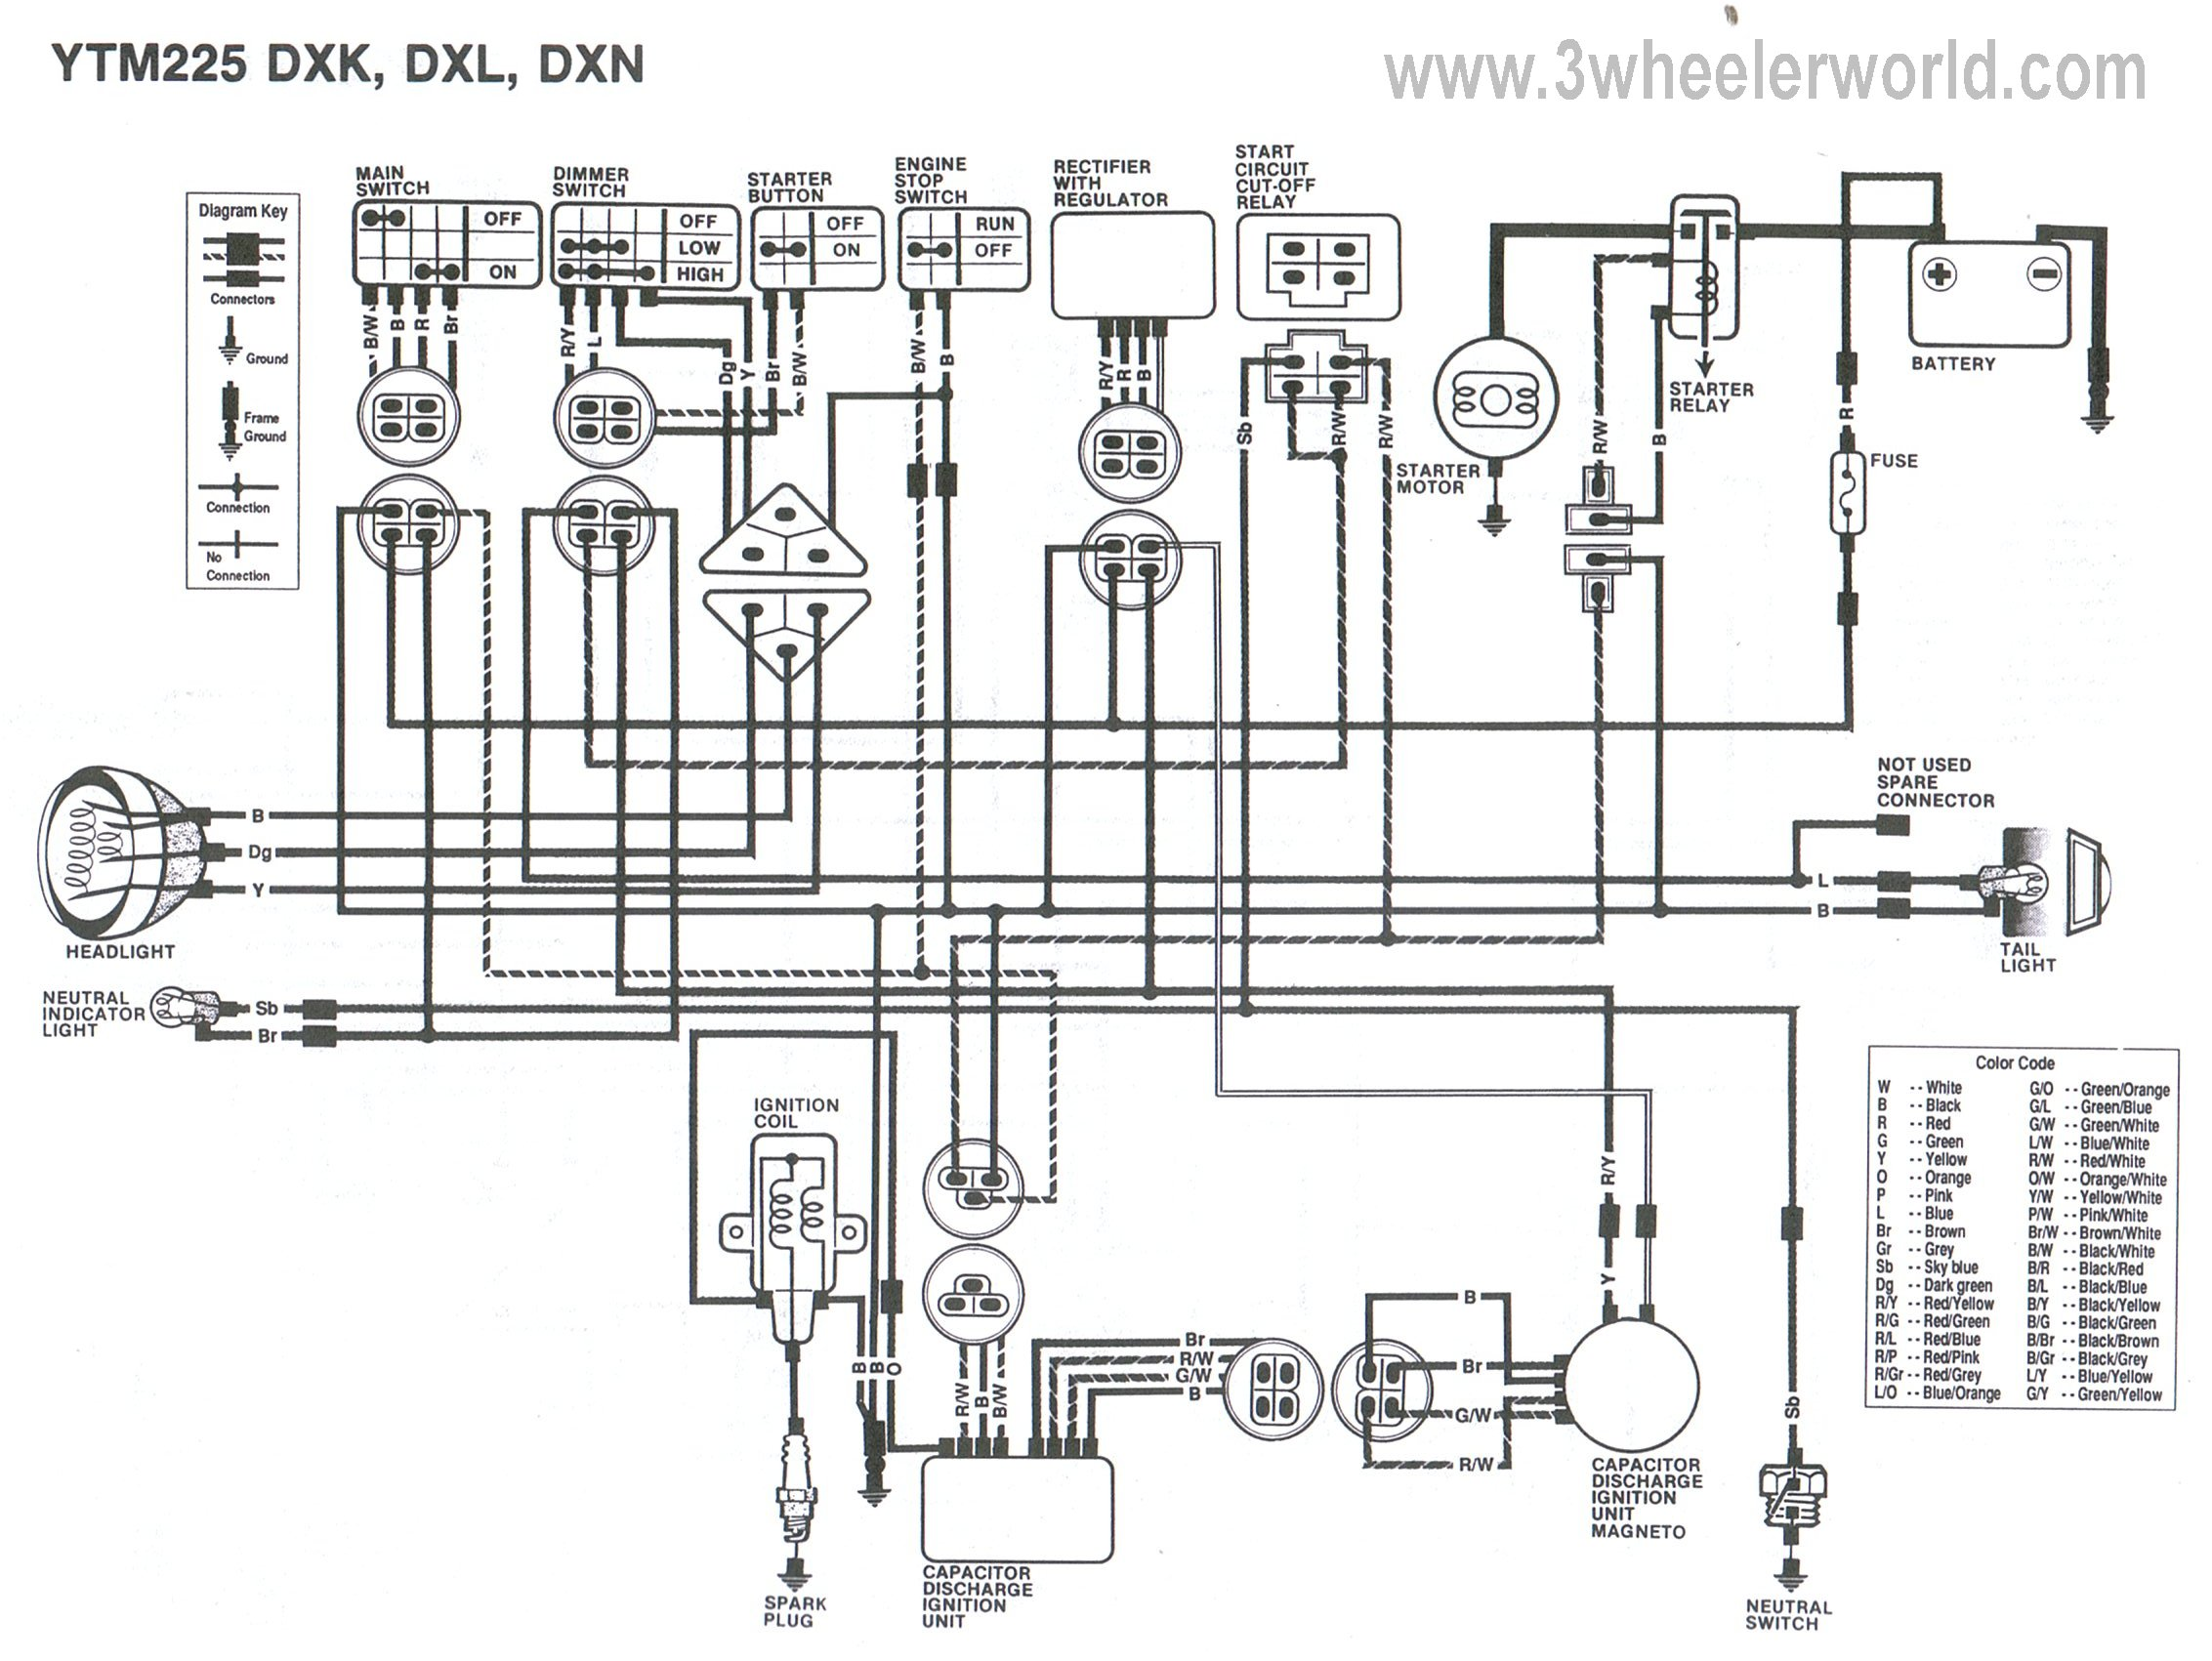 YTM225DXKDXLDXN 3 wheeler world tech help yamaha wiring diagrams yamaha moto 4 250 wiring diagrams at nearapp.co